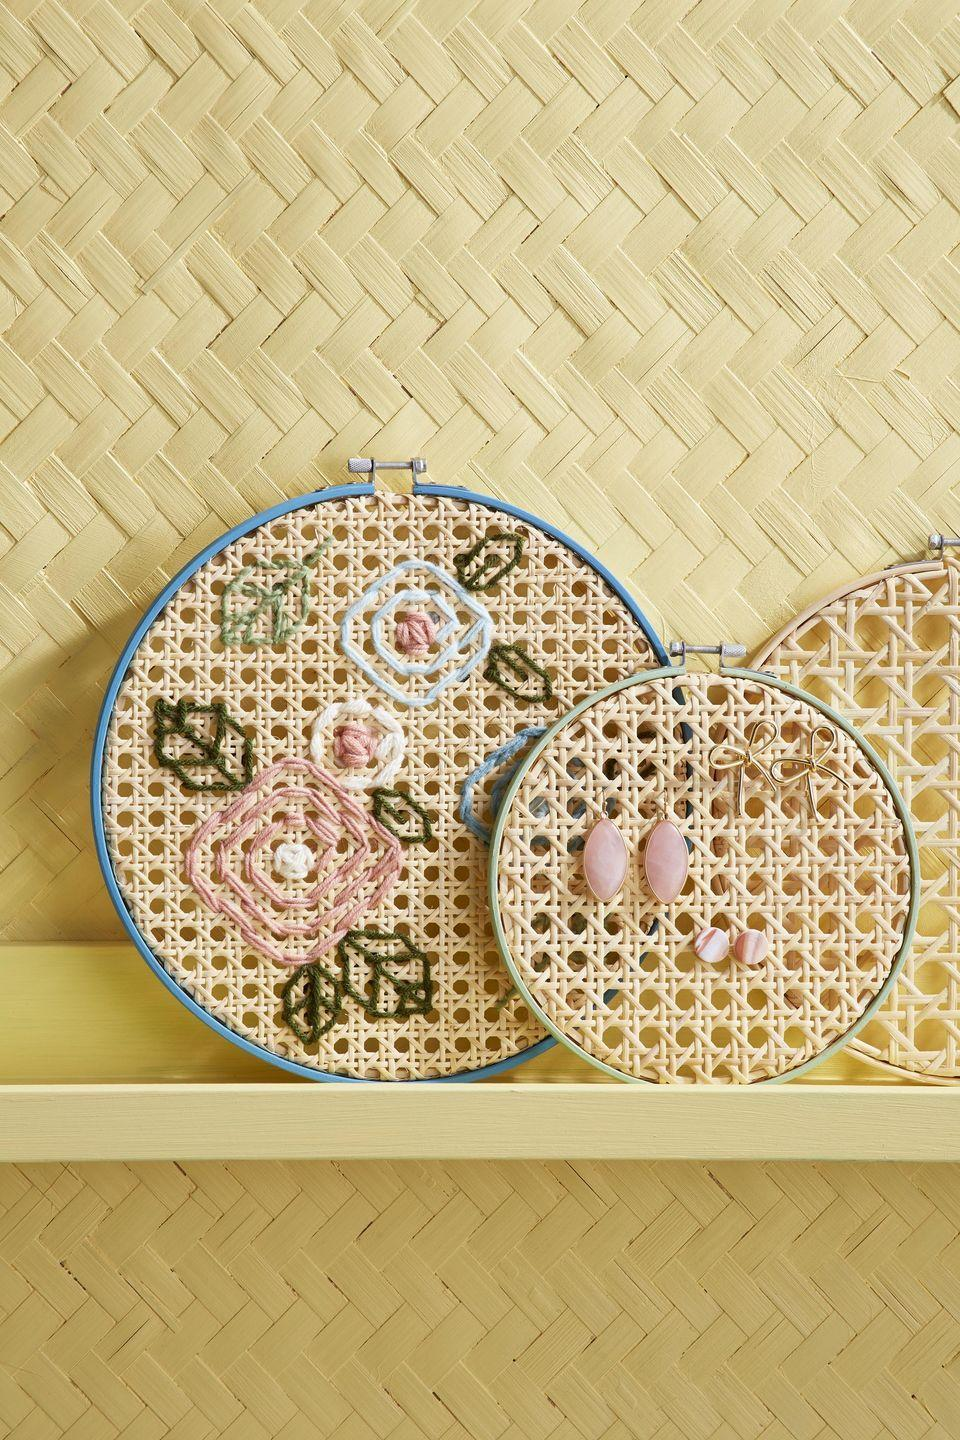 <p>Embroidery hoops filled with cane webbing can be turned into art work by stitching with yarn or simply used to hang ear rings. Either way, they are perfect for embellishing a wall or a shelf. <strong><br></strong></p><p><strong>To make:</strong> Separate rings of embroidery hoops. Cut pieces of caning that are just larger than the inside ring, then attach to the ring with hot- glue. Paint outer ring, if desired. Once dry, slip over inside ring and tighten. For artwork, thread yarn on a large-eyed needle, and stitch desired pattern. To use as a jewelry holder, simply hang or attach earrings through caning holes.</p>